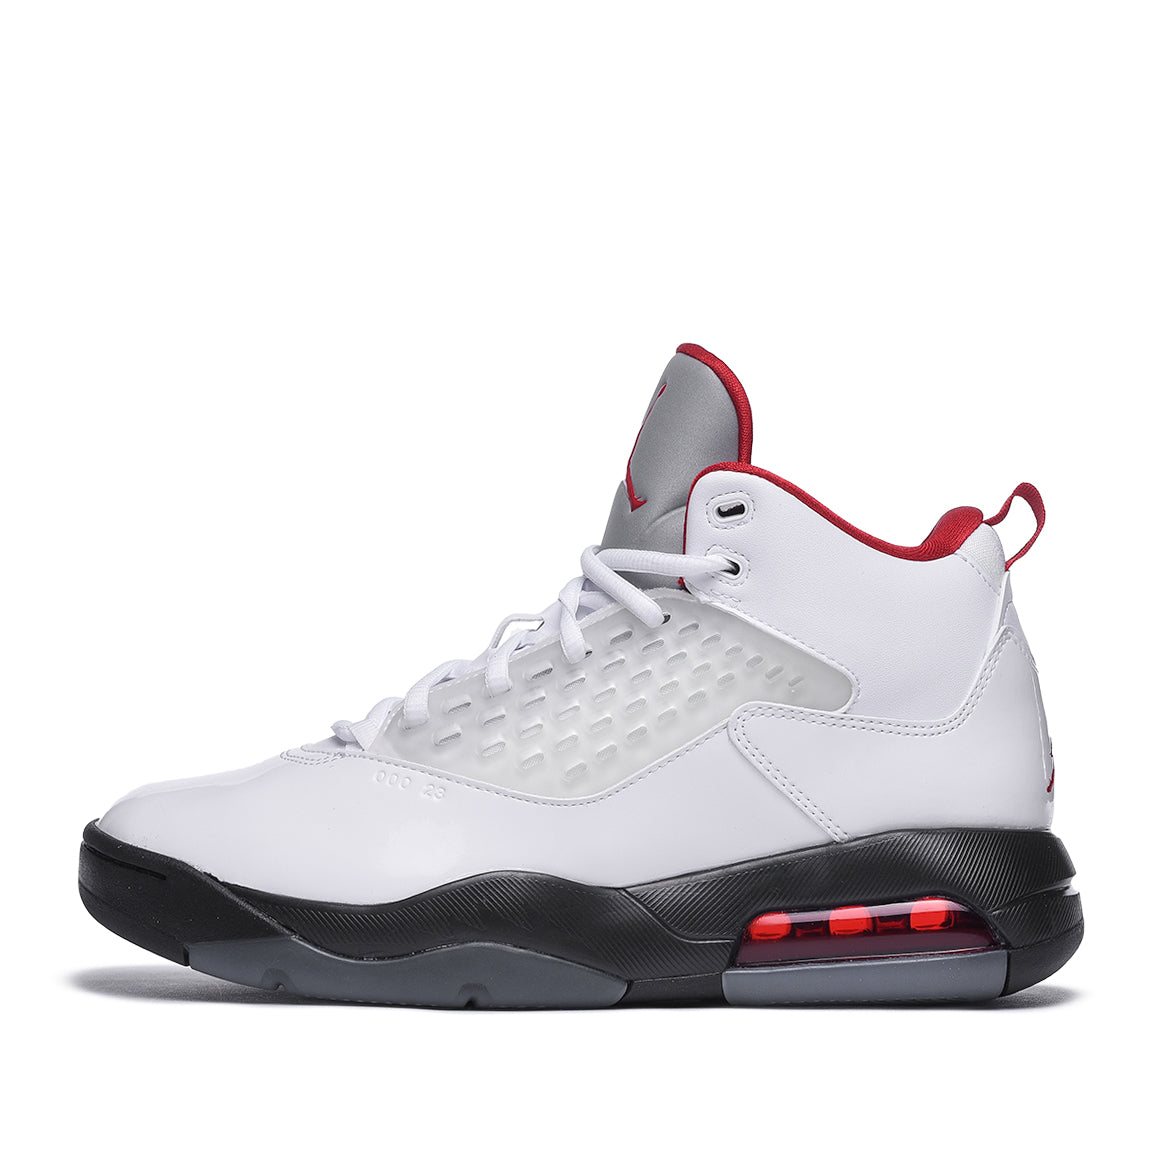 JORDAN MAXIN 200 - WHITE / GYM RED / BLACK